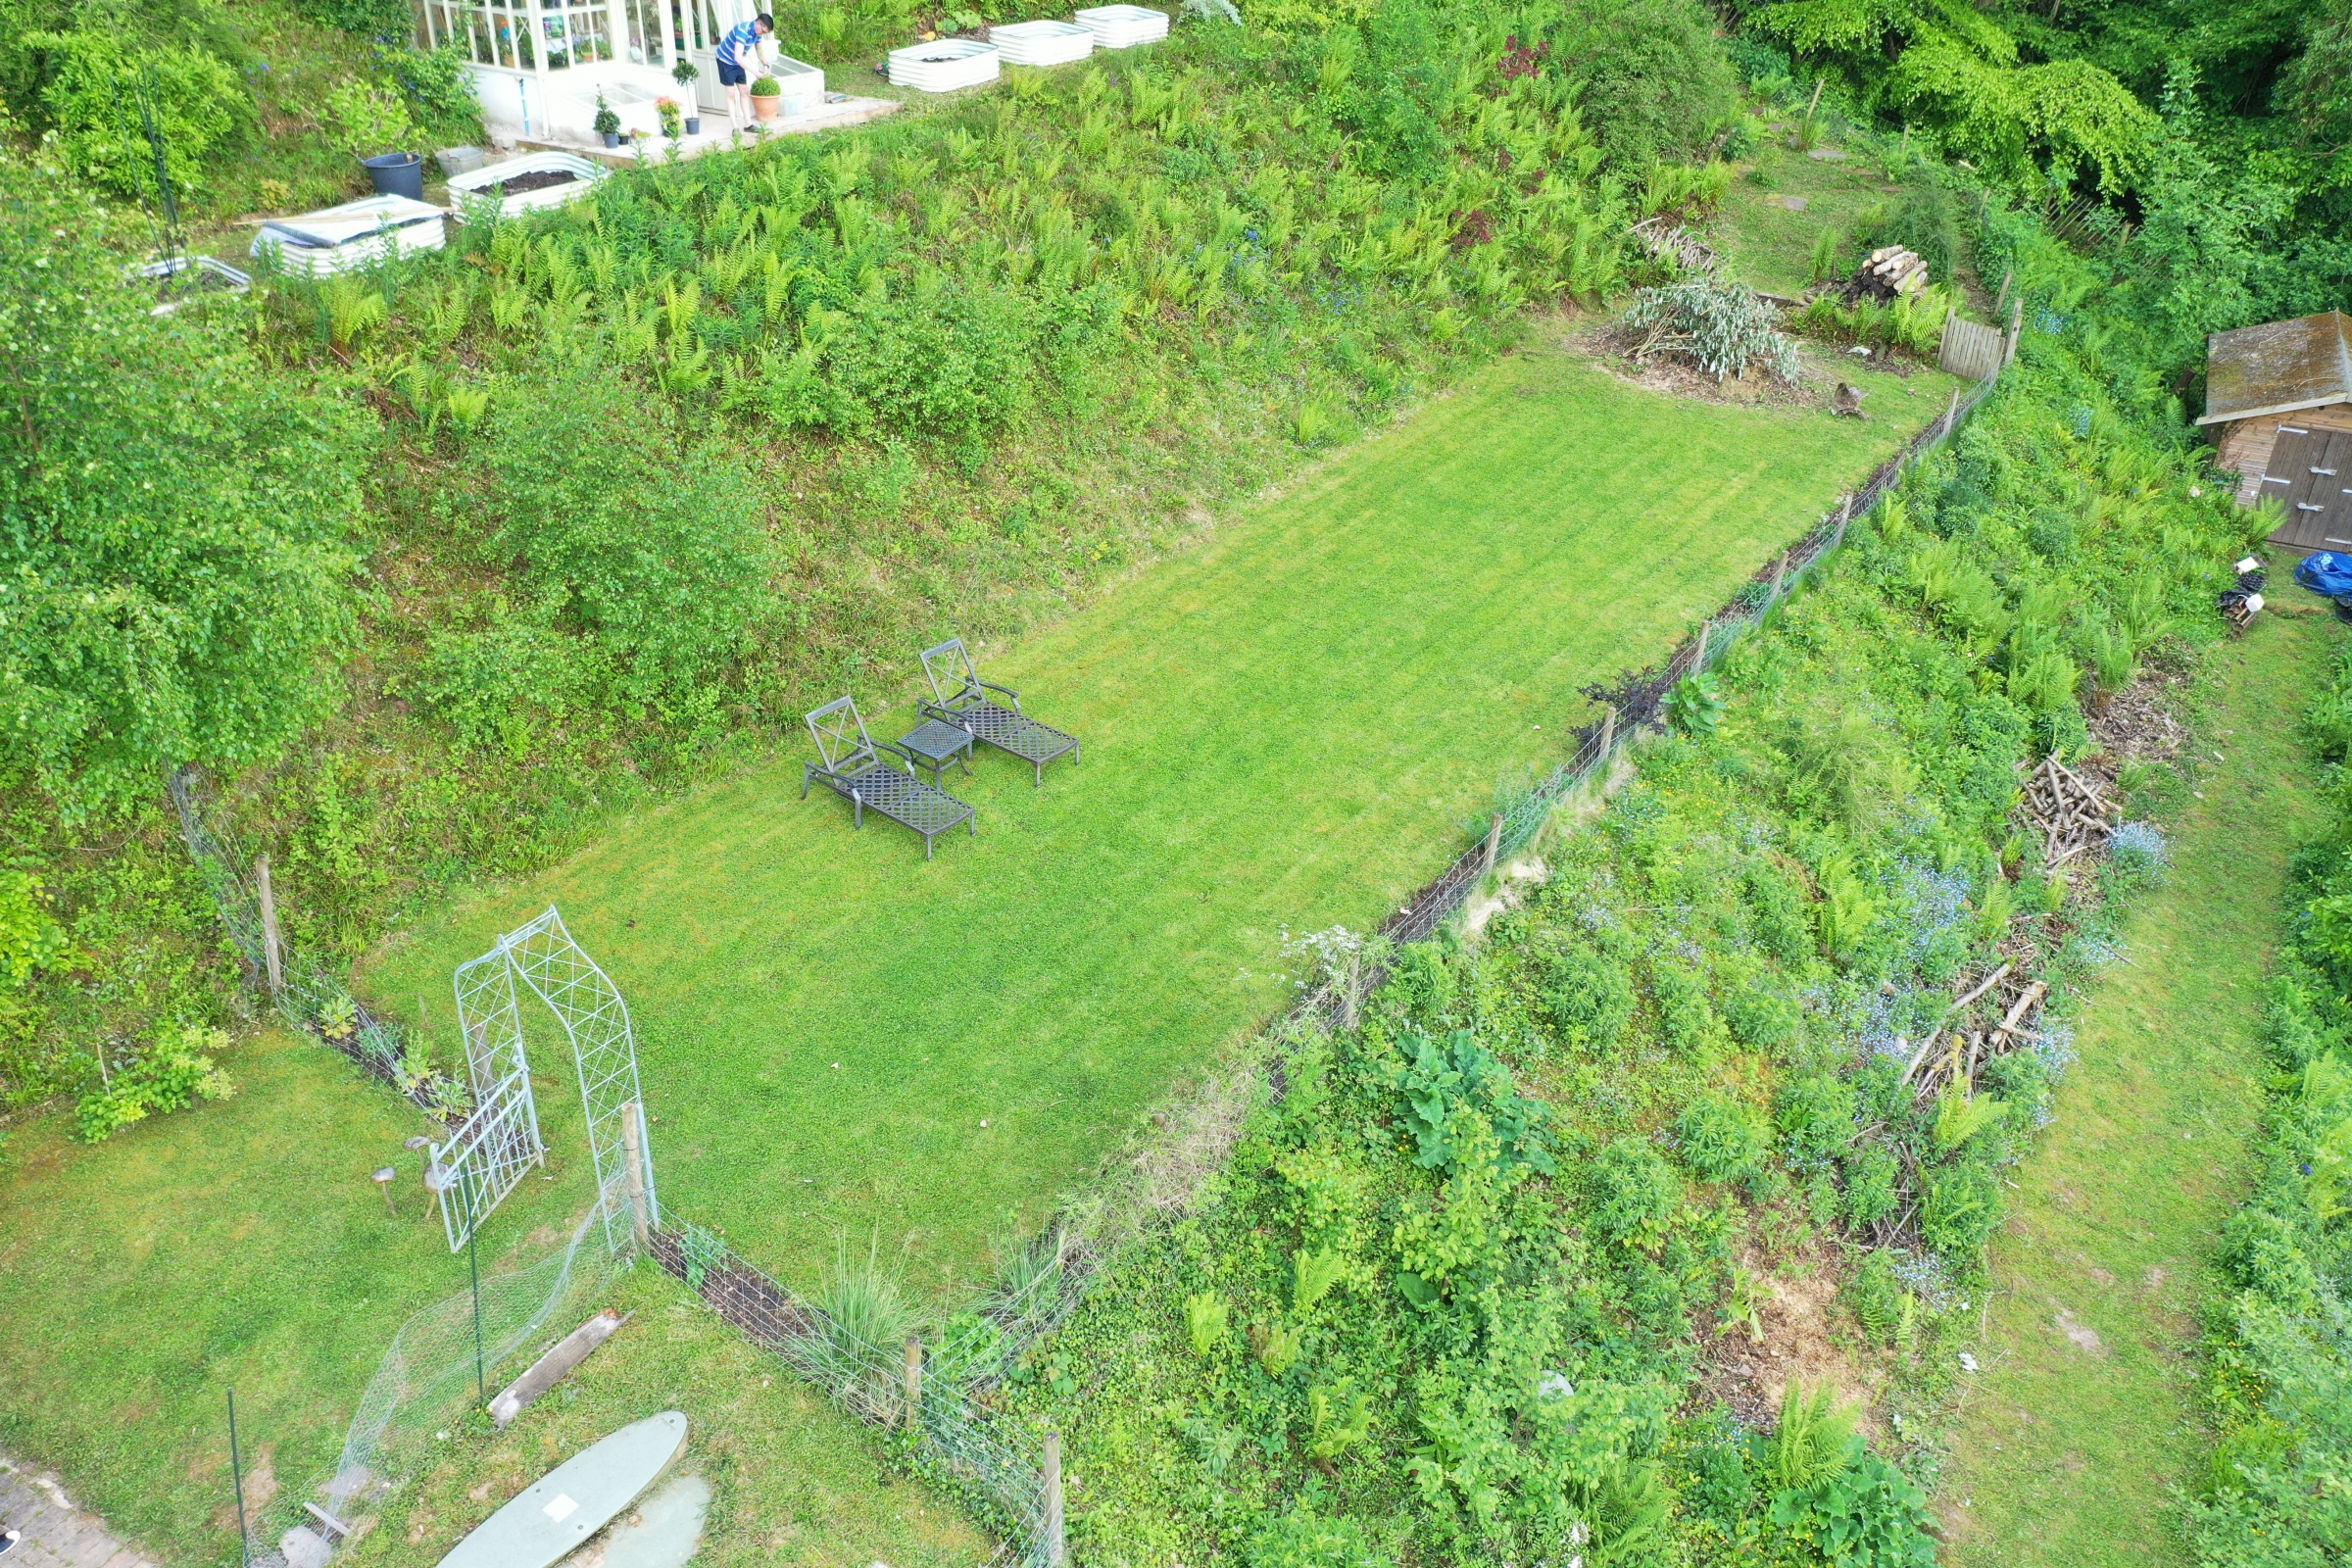 Aerial survey property herefordshire with certified drone pilot Luke Sutton 1 aerial drone inspection survey